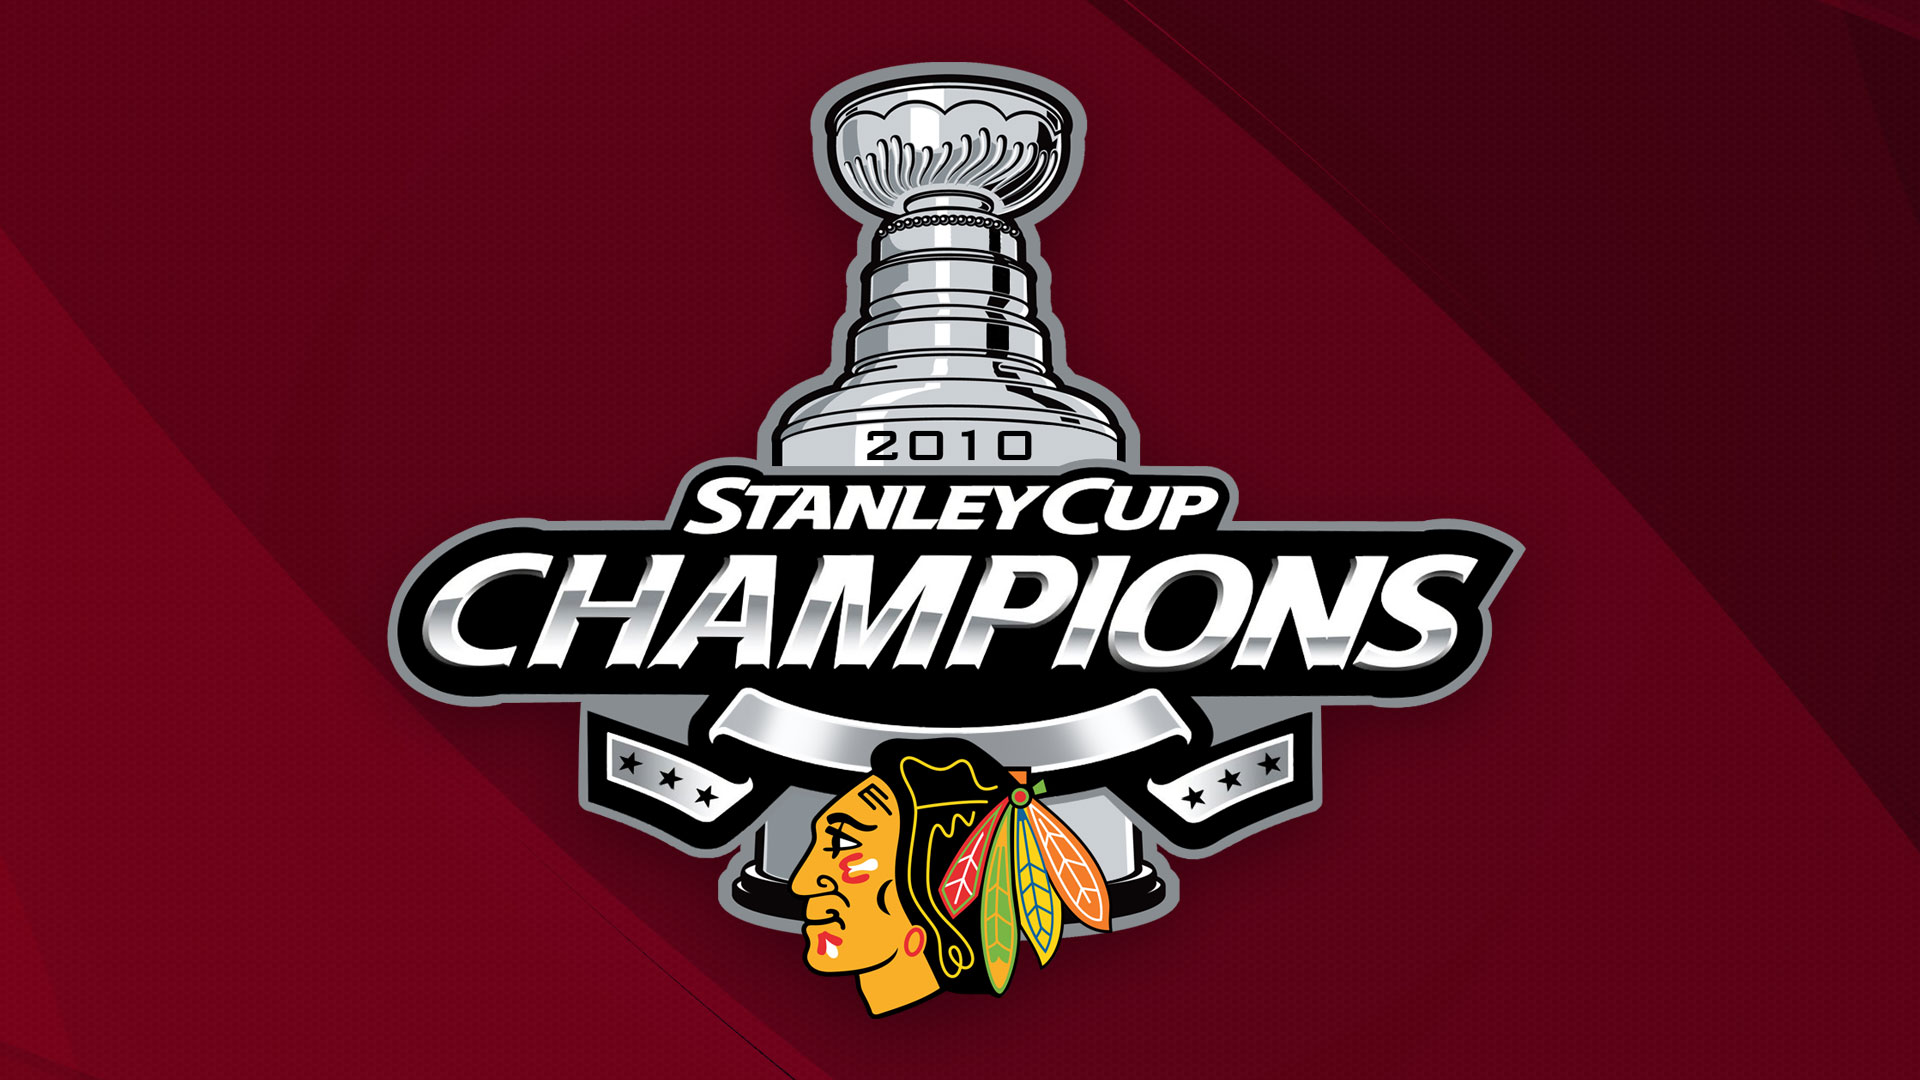 NHL Wallpapers   Chicago Black Hawks 2010 Stanley Cup Champs wallpaper 1920x1080